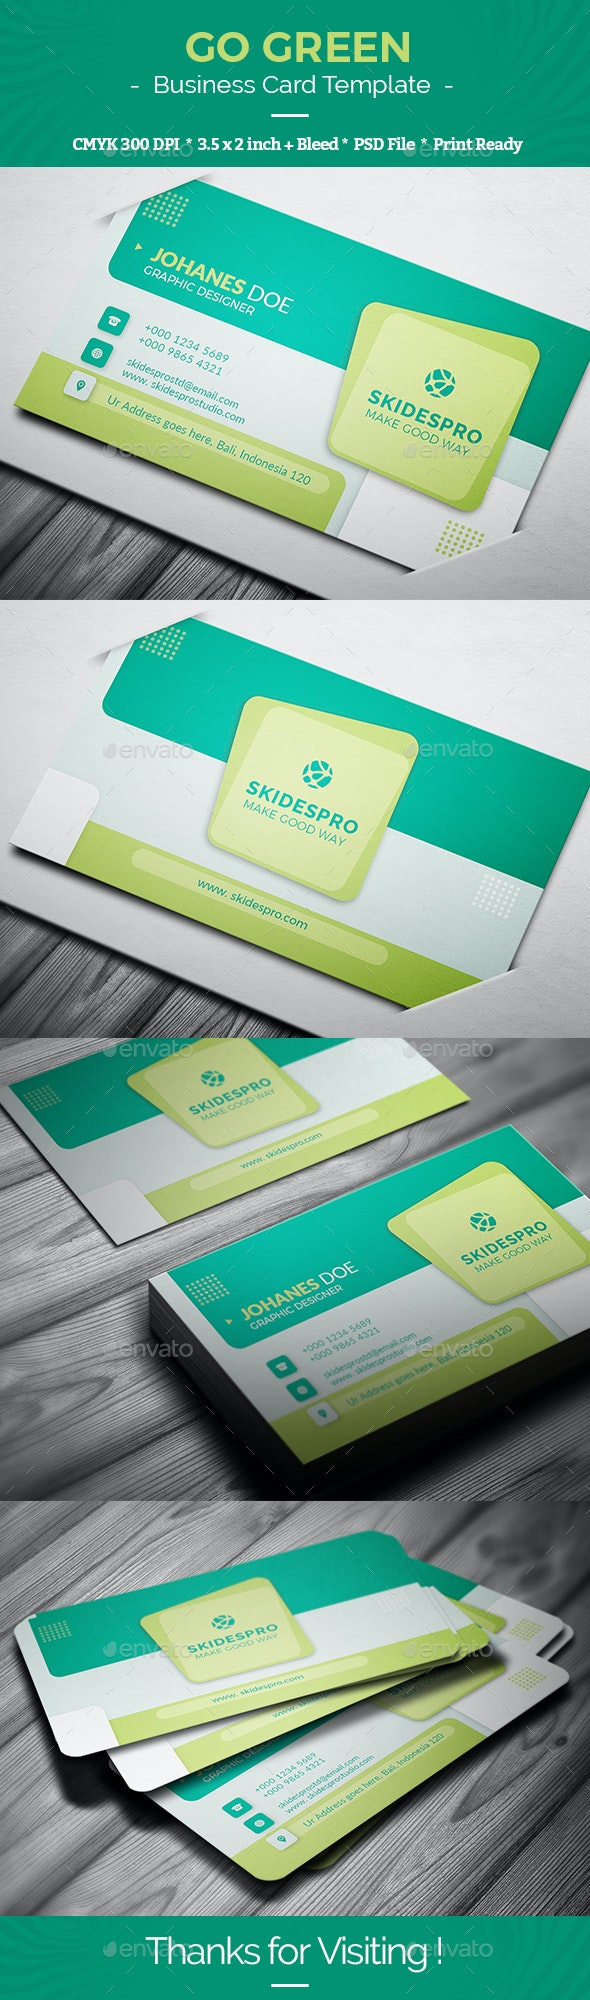 Go Green Business Card Template - Business Cards Print Templates